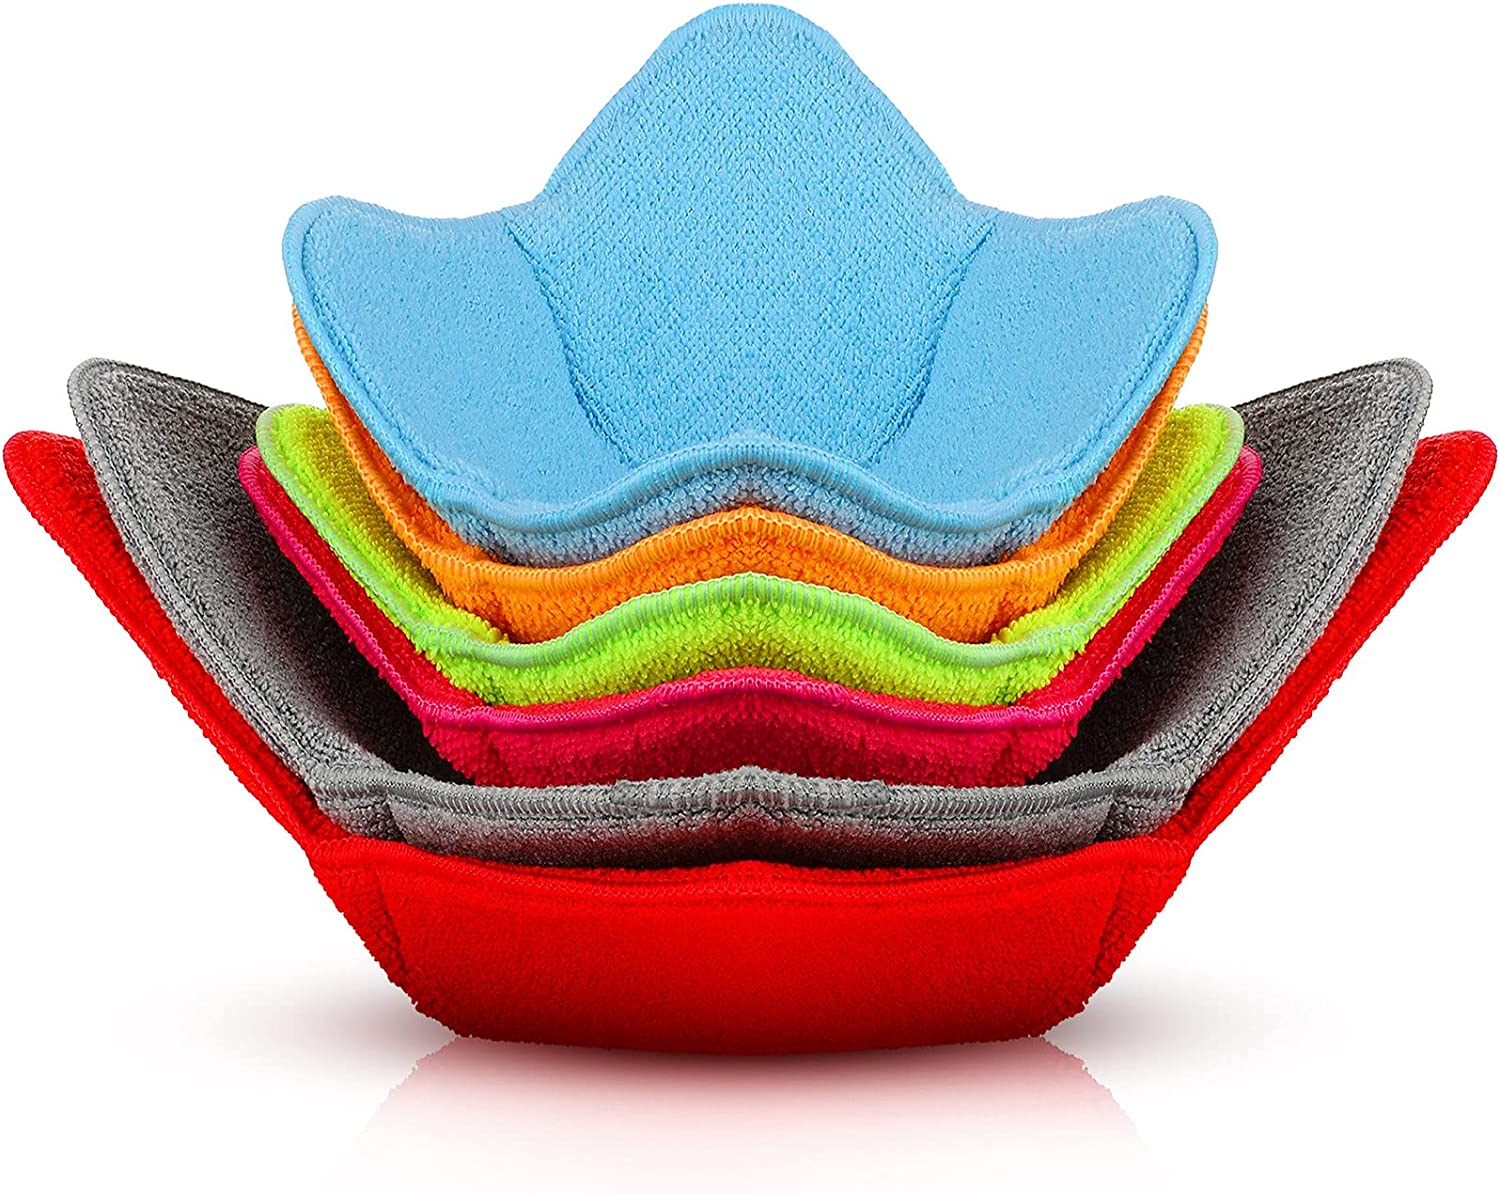 6 Pieces Multi Color Microwave Safe Bowl Huggers Microwave Plate Holder Hot Bowl Holder Microwave Safe Bowl Holder Protect Your Hands from Hot Dishes for Heating Soup